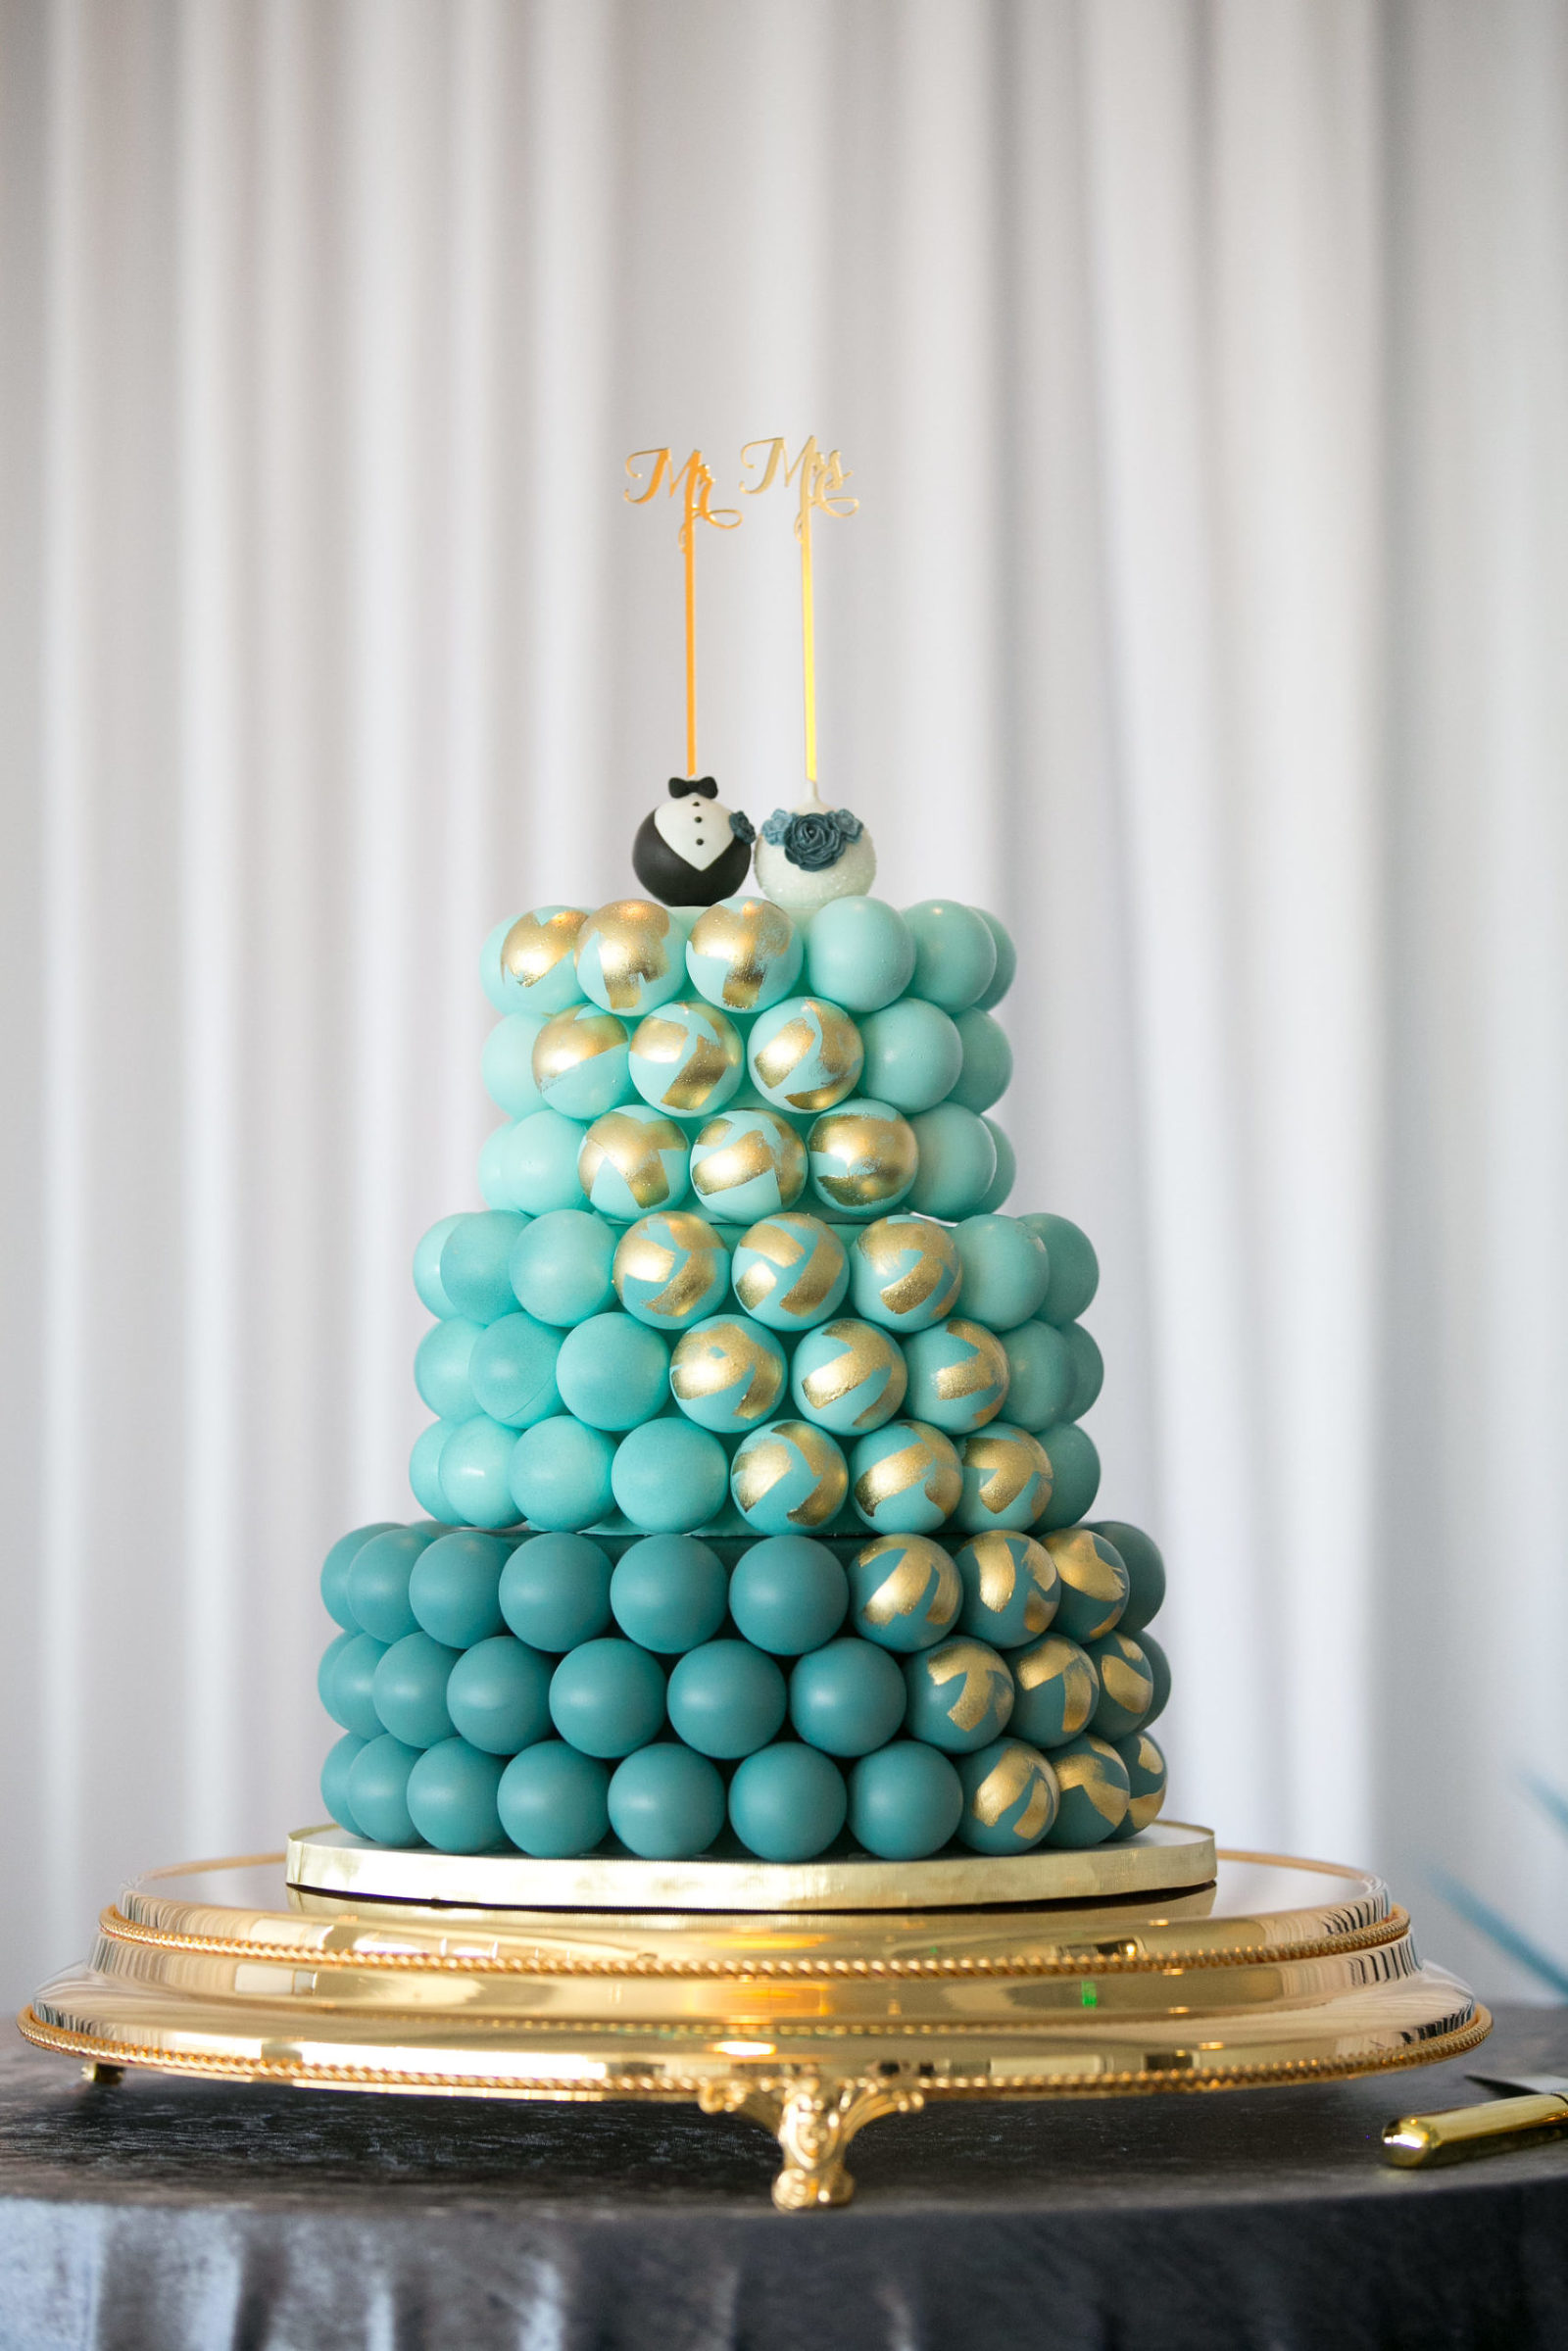 Unique Whimsical Ombre Blue with Gold Accent Three Tier Cake Pop Cake and Bride and Groom Cake Pop Topper | Wedding Cake Pops and Desserts Sweetly Dipped Confections | Wedding Photographer Carrie Wildes Photography | Tampa Wedding Planner John Campbell Weddings